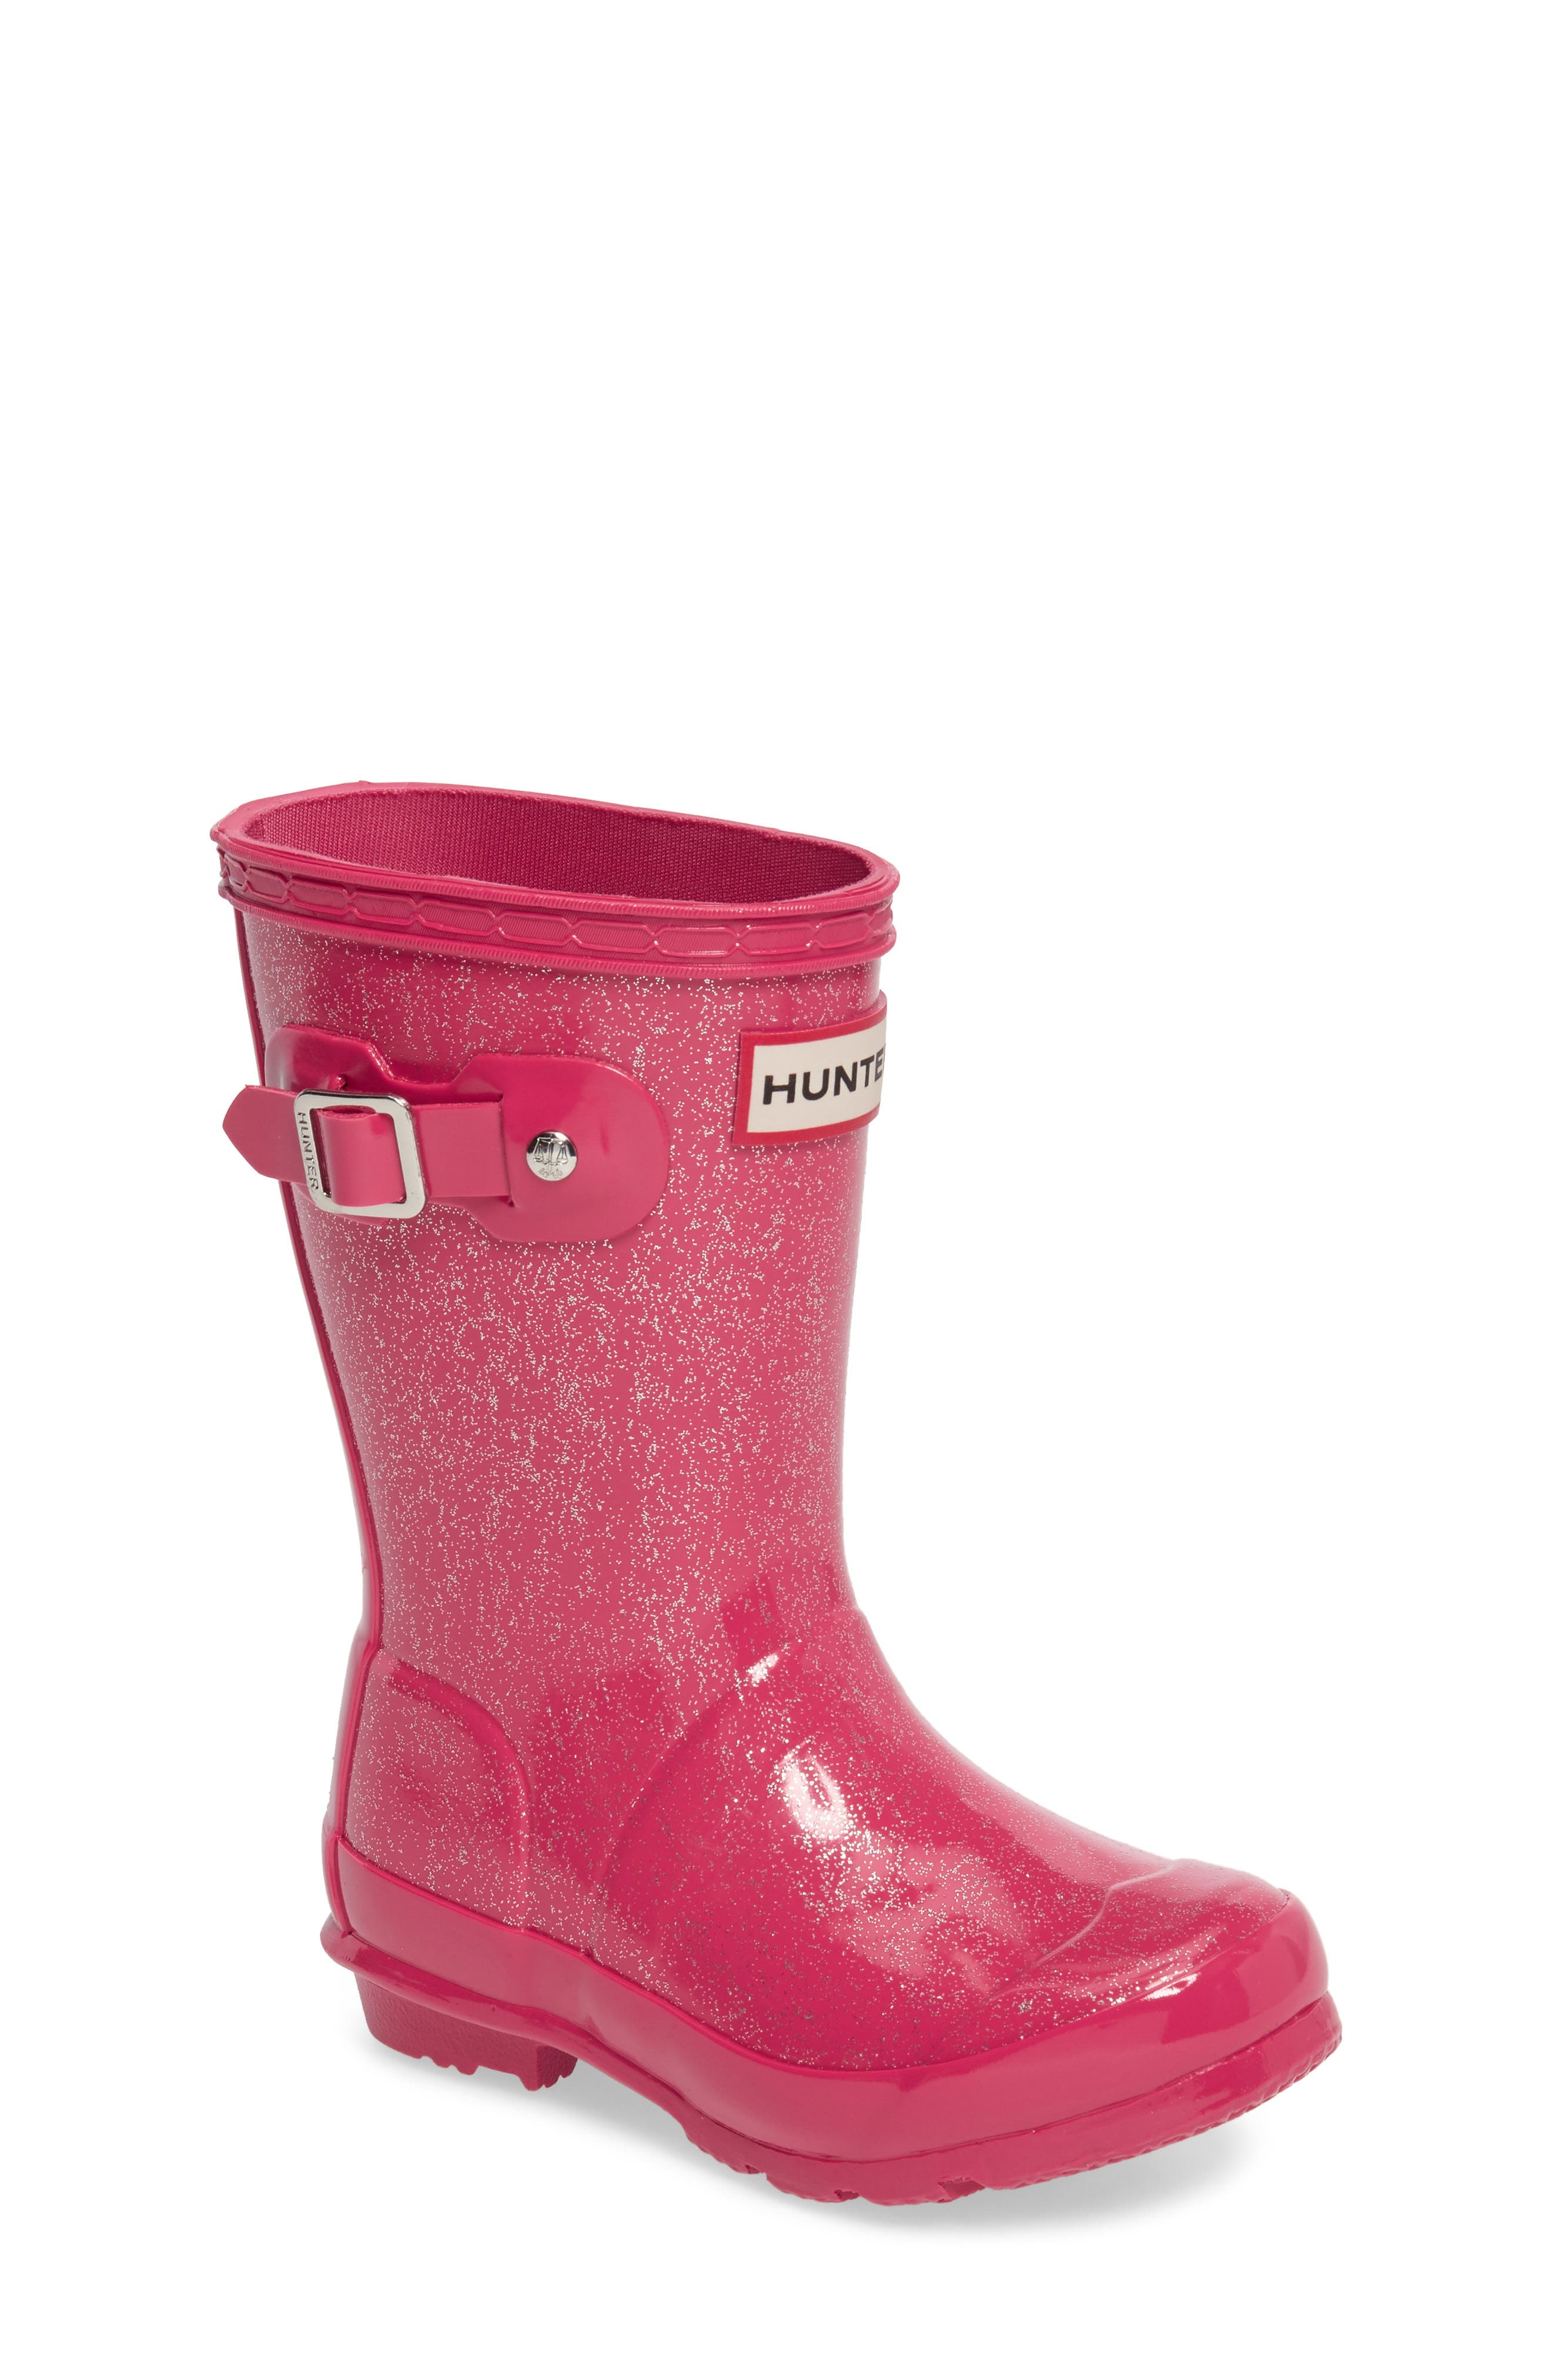 Main Image - Hunter 'Original Glitter' Rain Boot (Toddler, Little Kid & Big Kid)